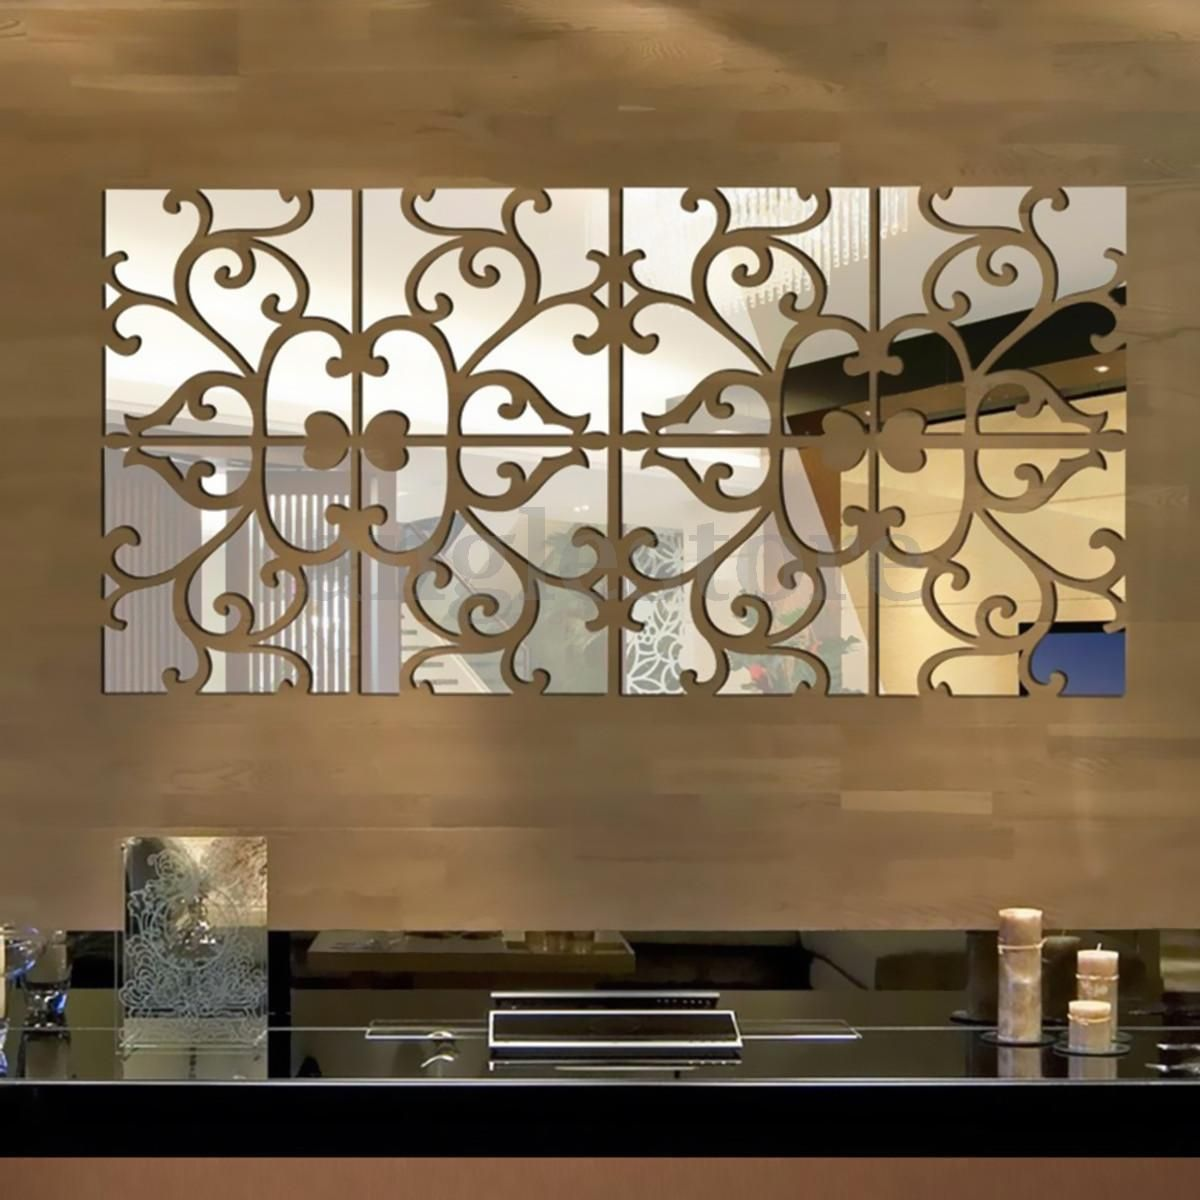 32pcs 3d vine mirror wall stickers art acrylic tile decal home